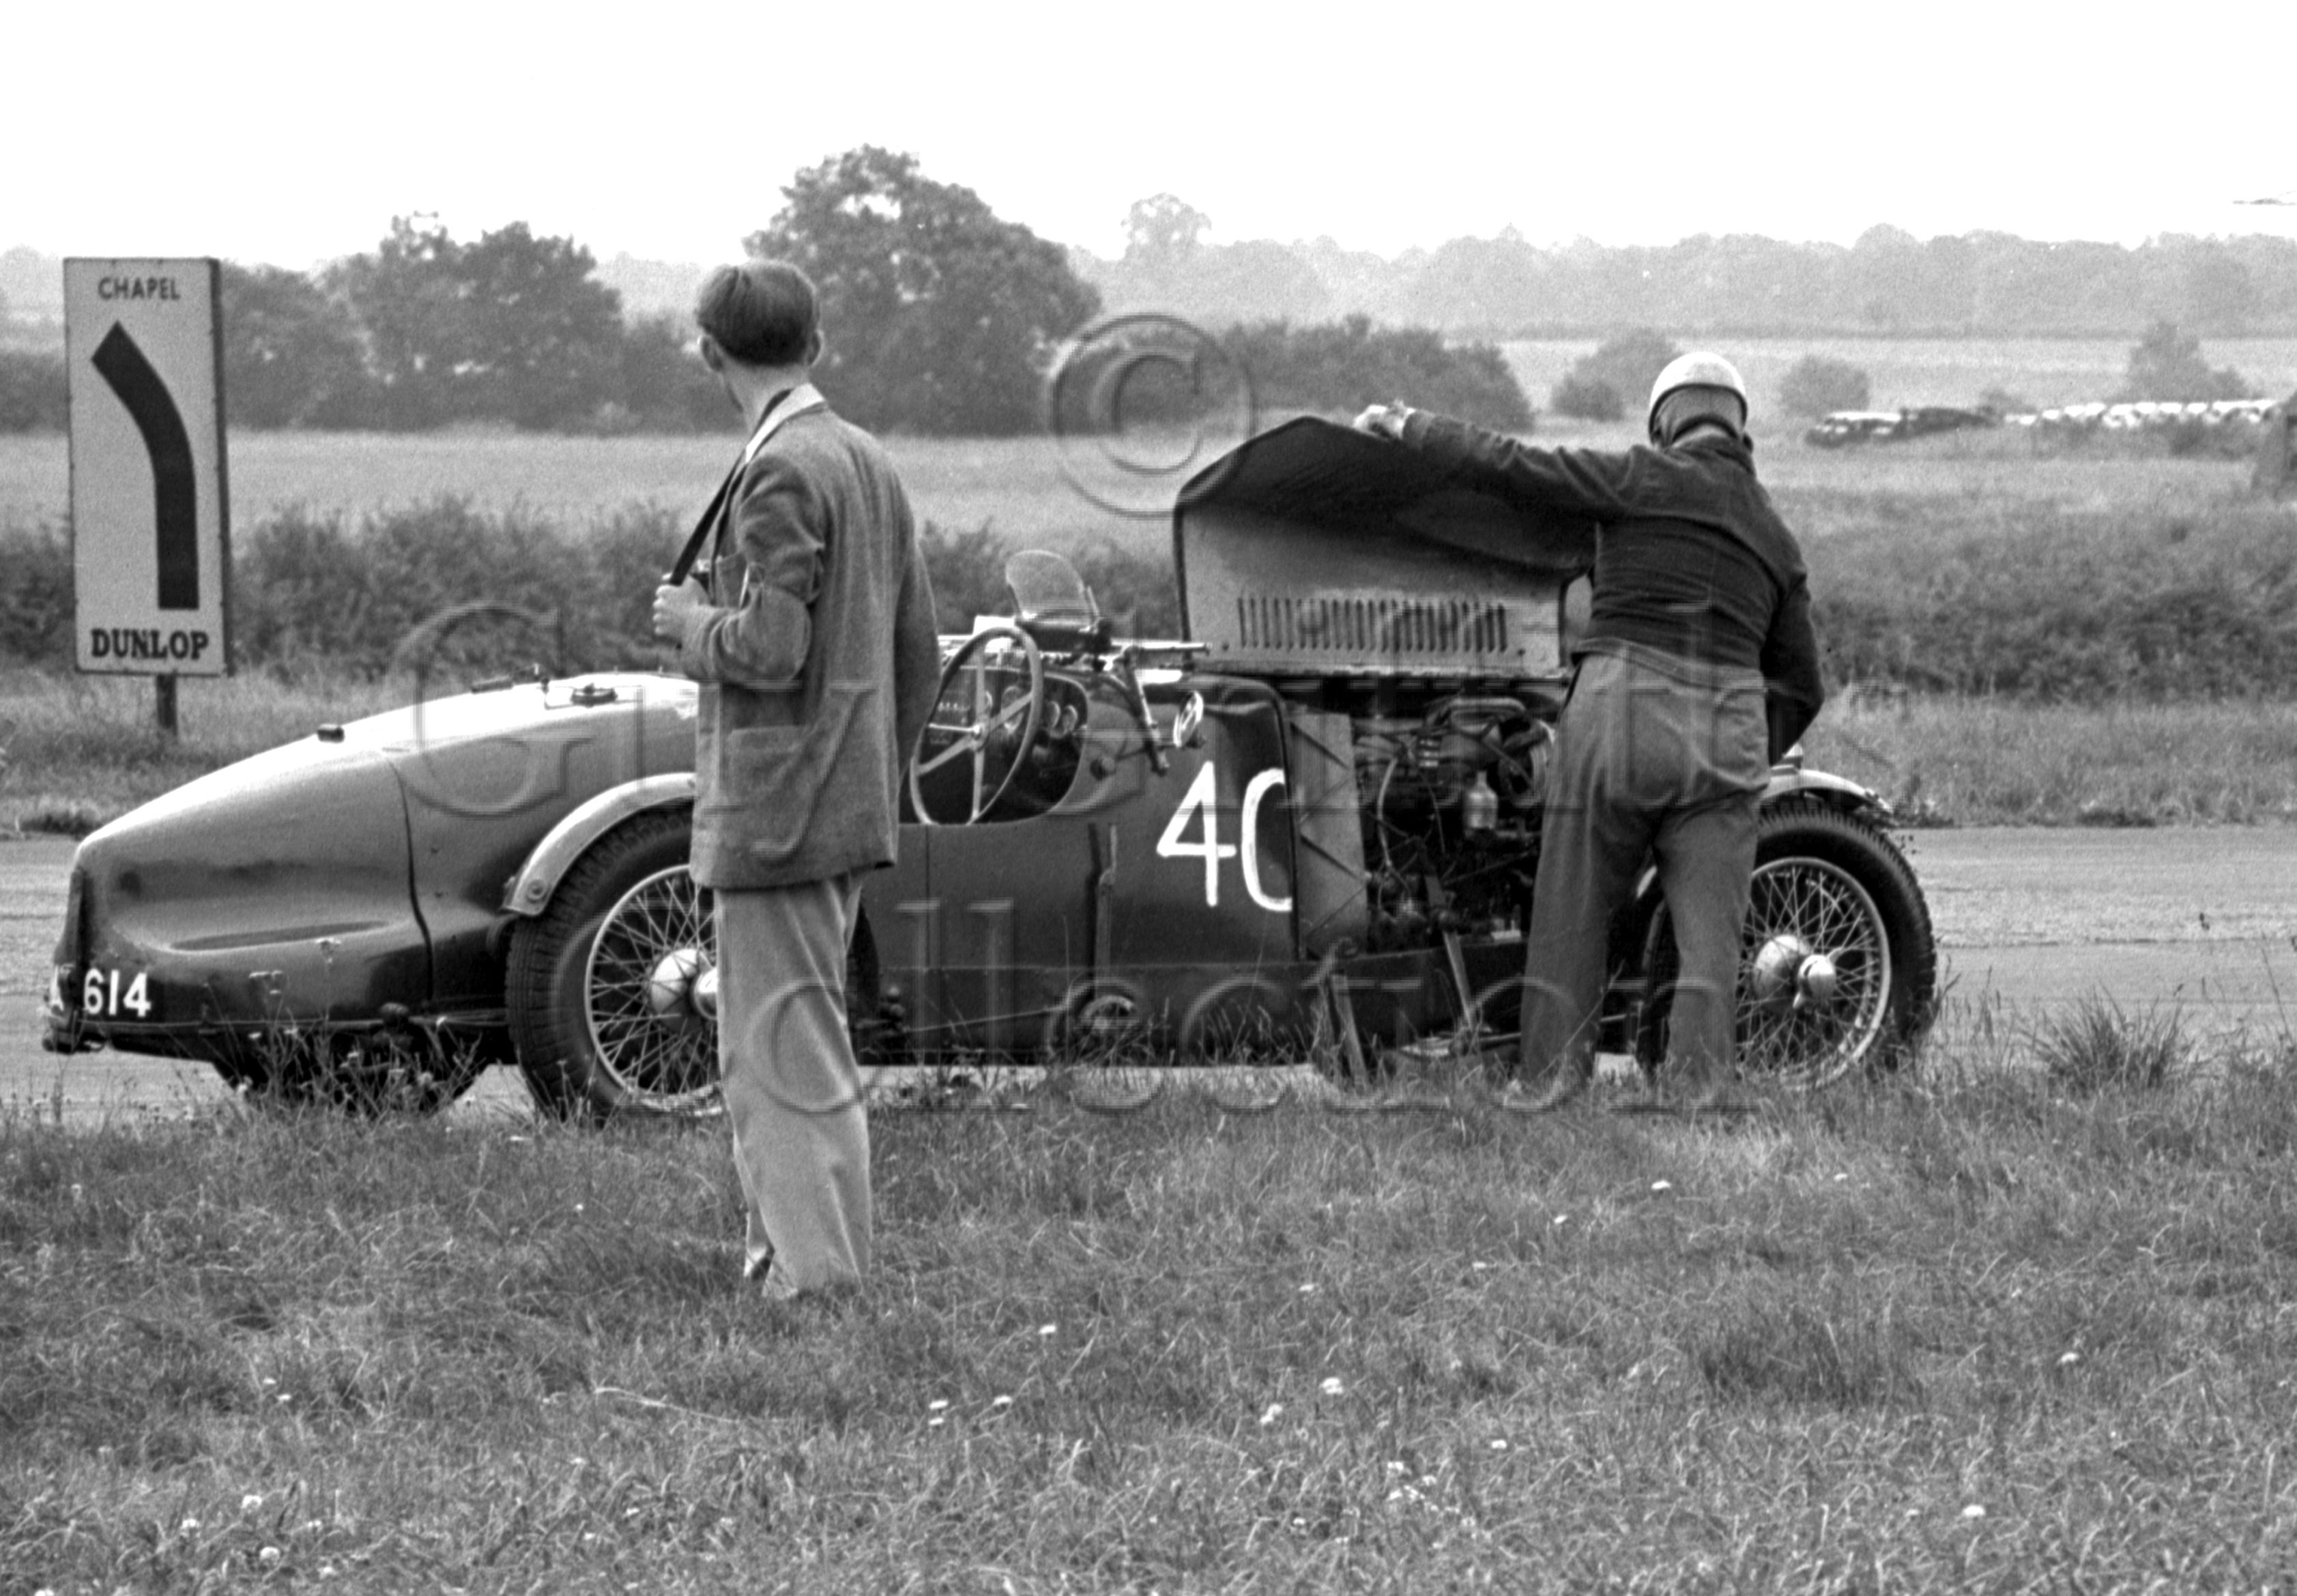 47-994–R-F-McNab-Meredith–Aston-Martin–Silverstone–28-07-1951.jpg - The Guy Griffiths Collection